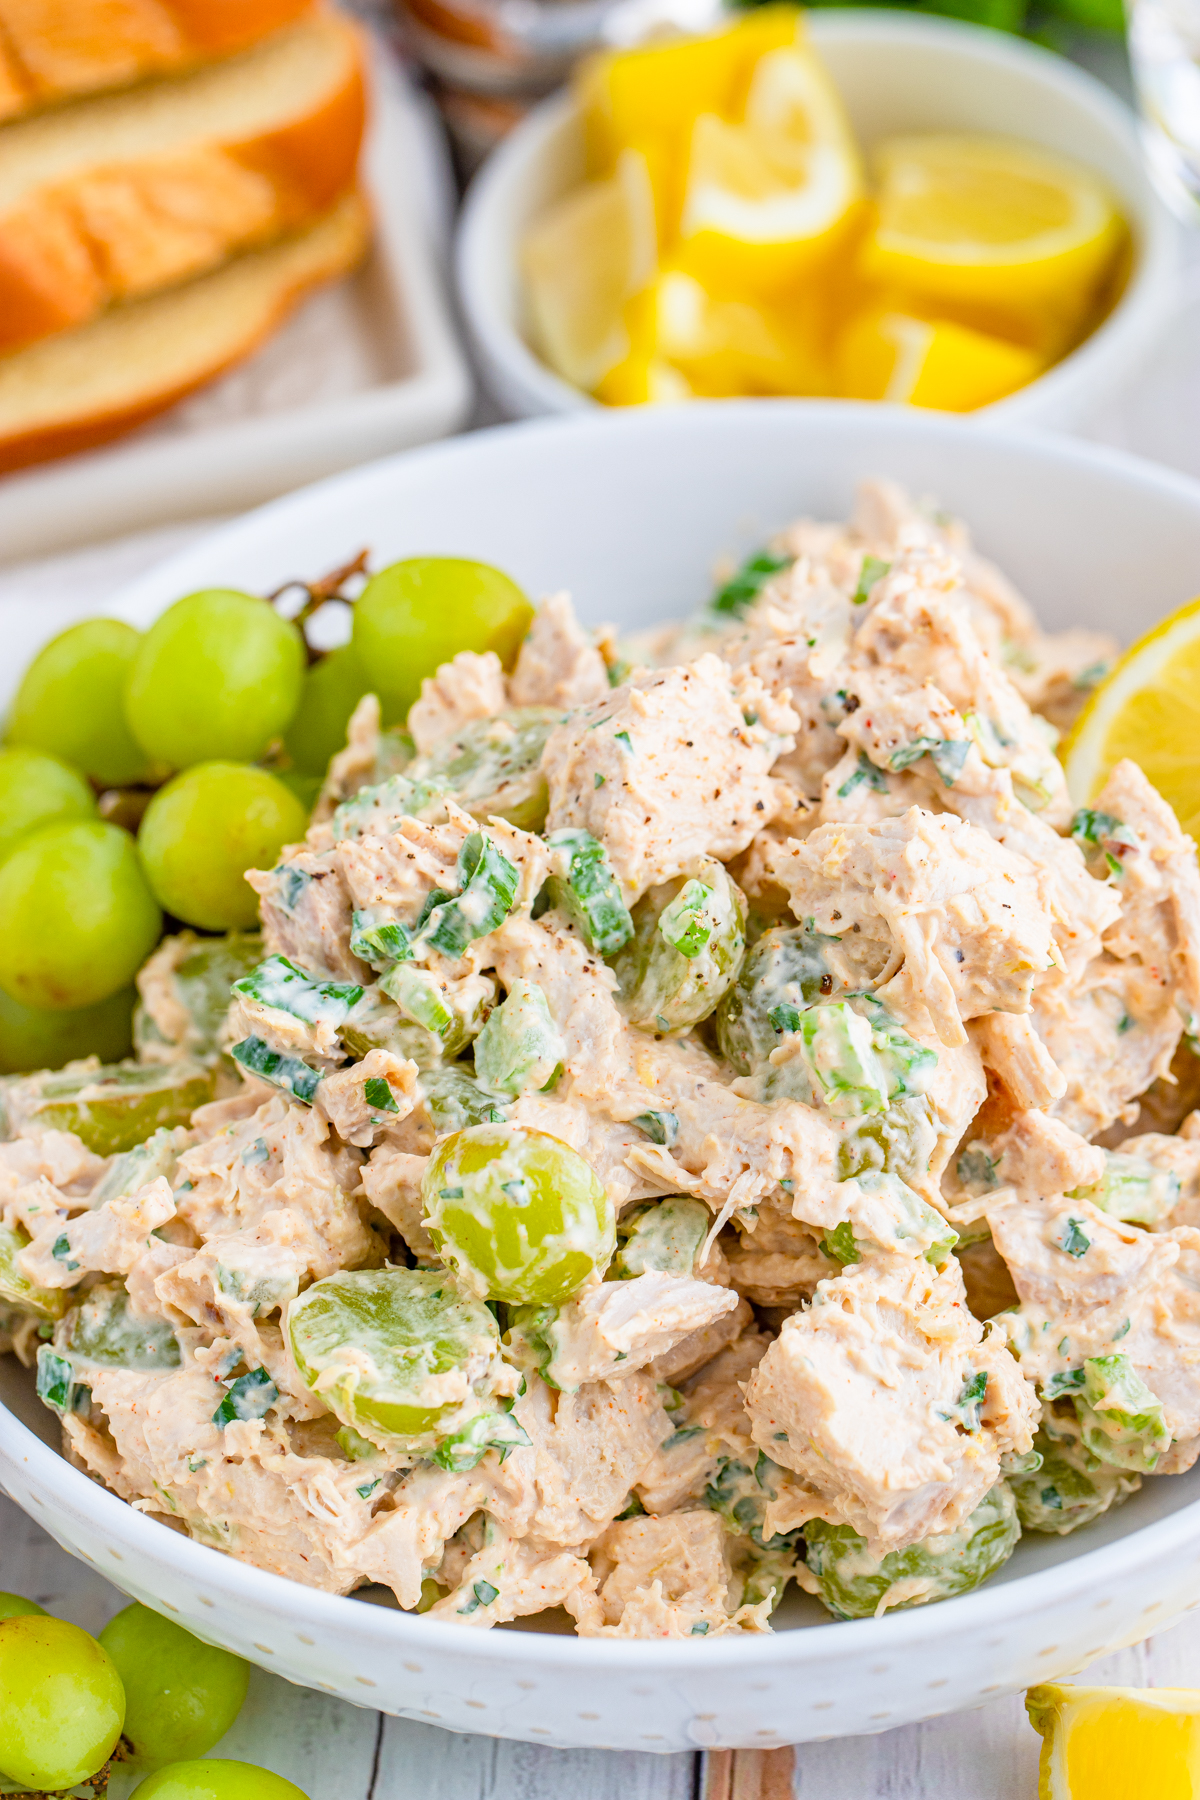 Finished Chicken Salad with Grapes in bowl